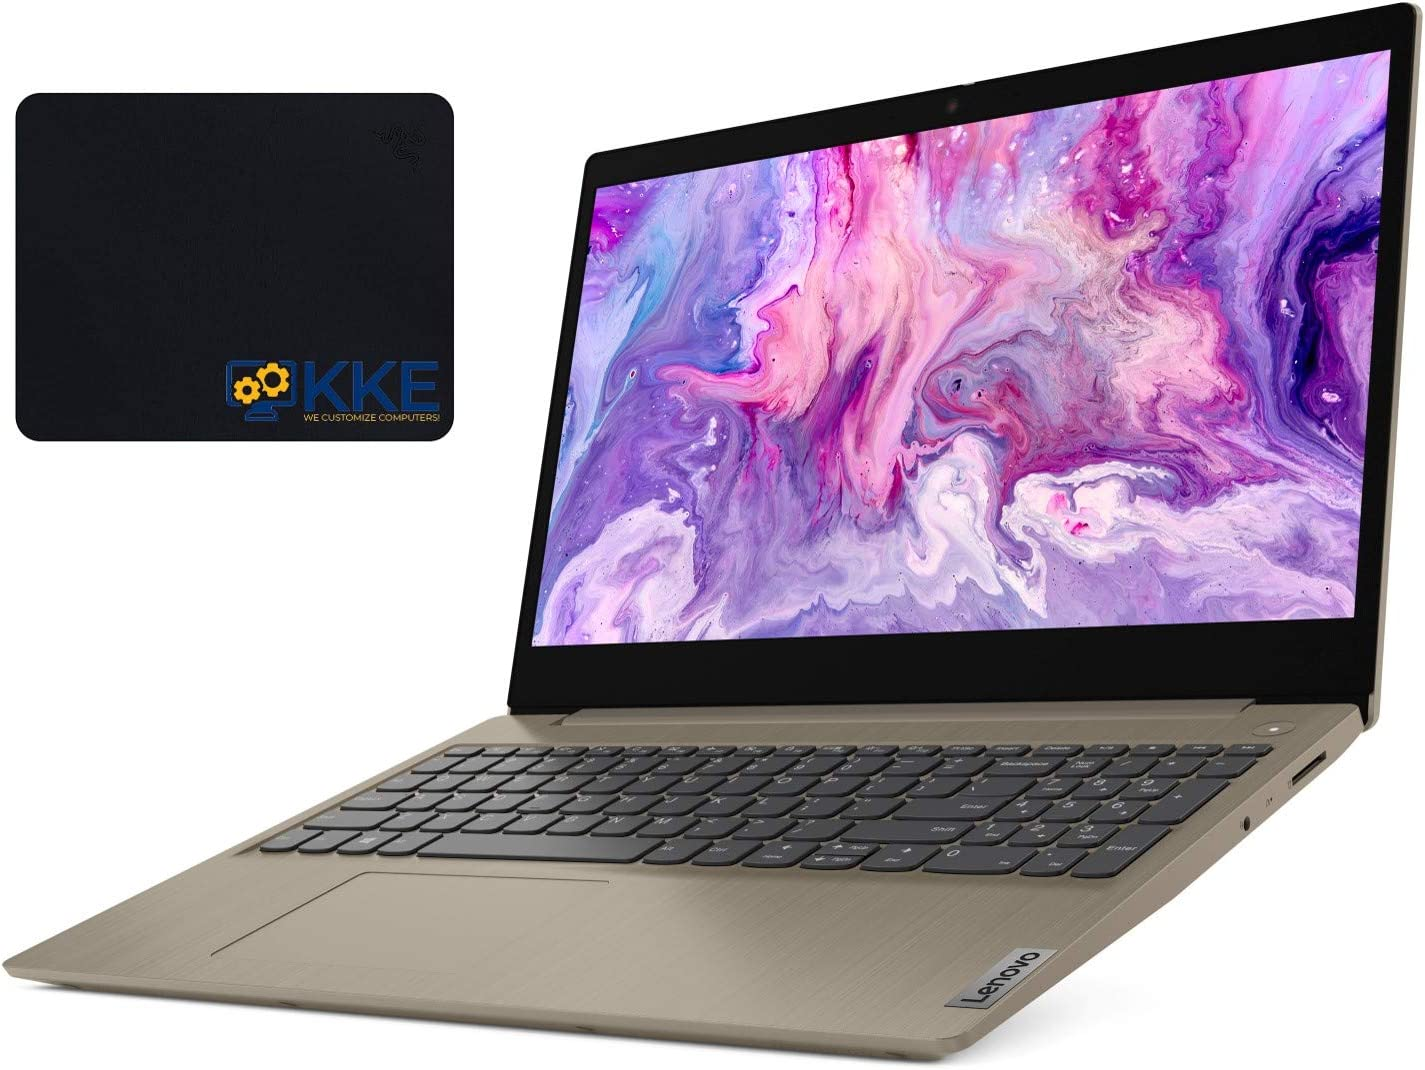 "2020 Newest Lenovo Ideapad 3 (S145 Updated Version) Laptop, 15.6"" HD Touchscreen, 10th Gen Intel Core i3-1005G1 Processor, 20GB Memory, 512GB SSD, HDMI, Wi-Fi, Webcam, Windows 10, KKE Mousepad, Almond"